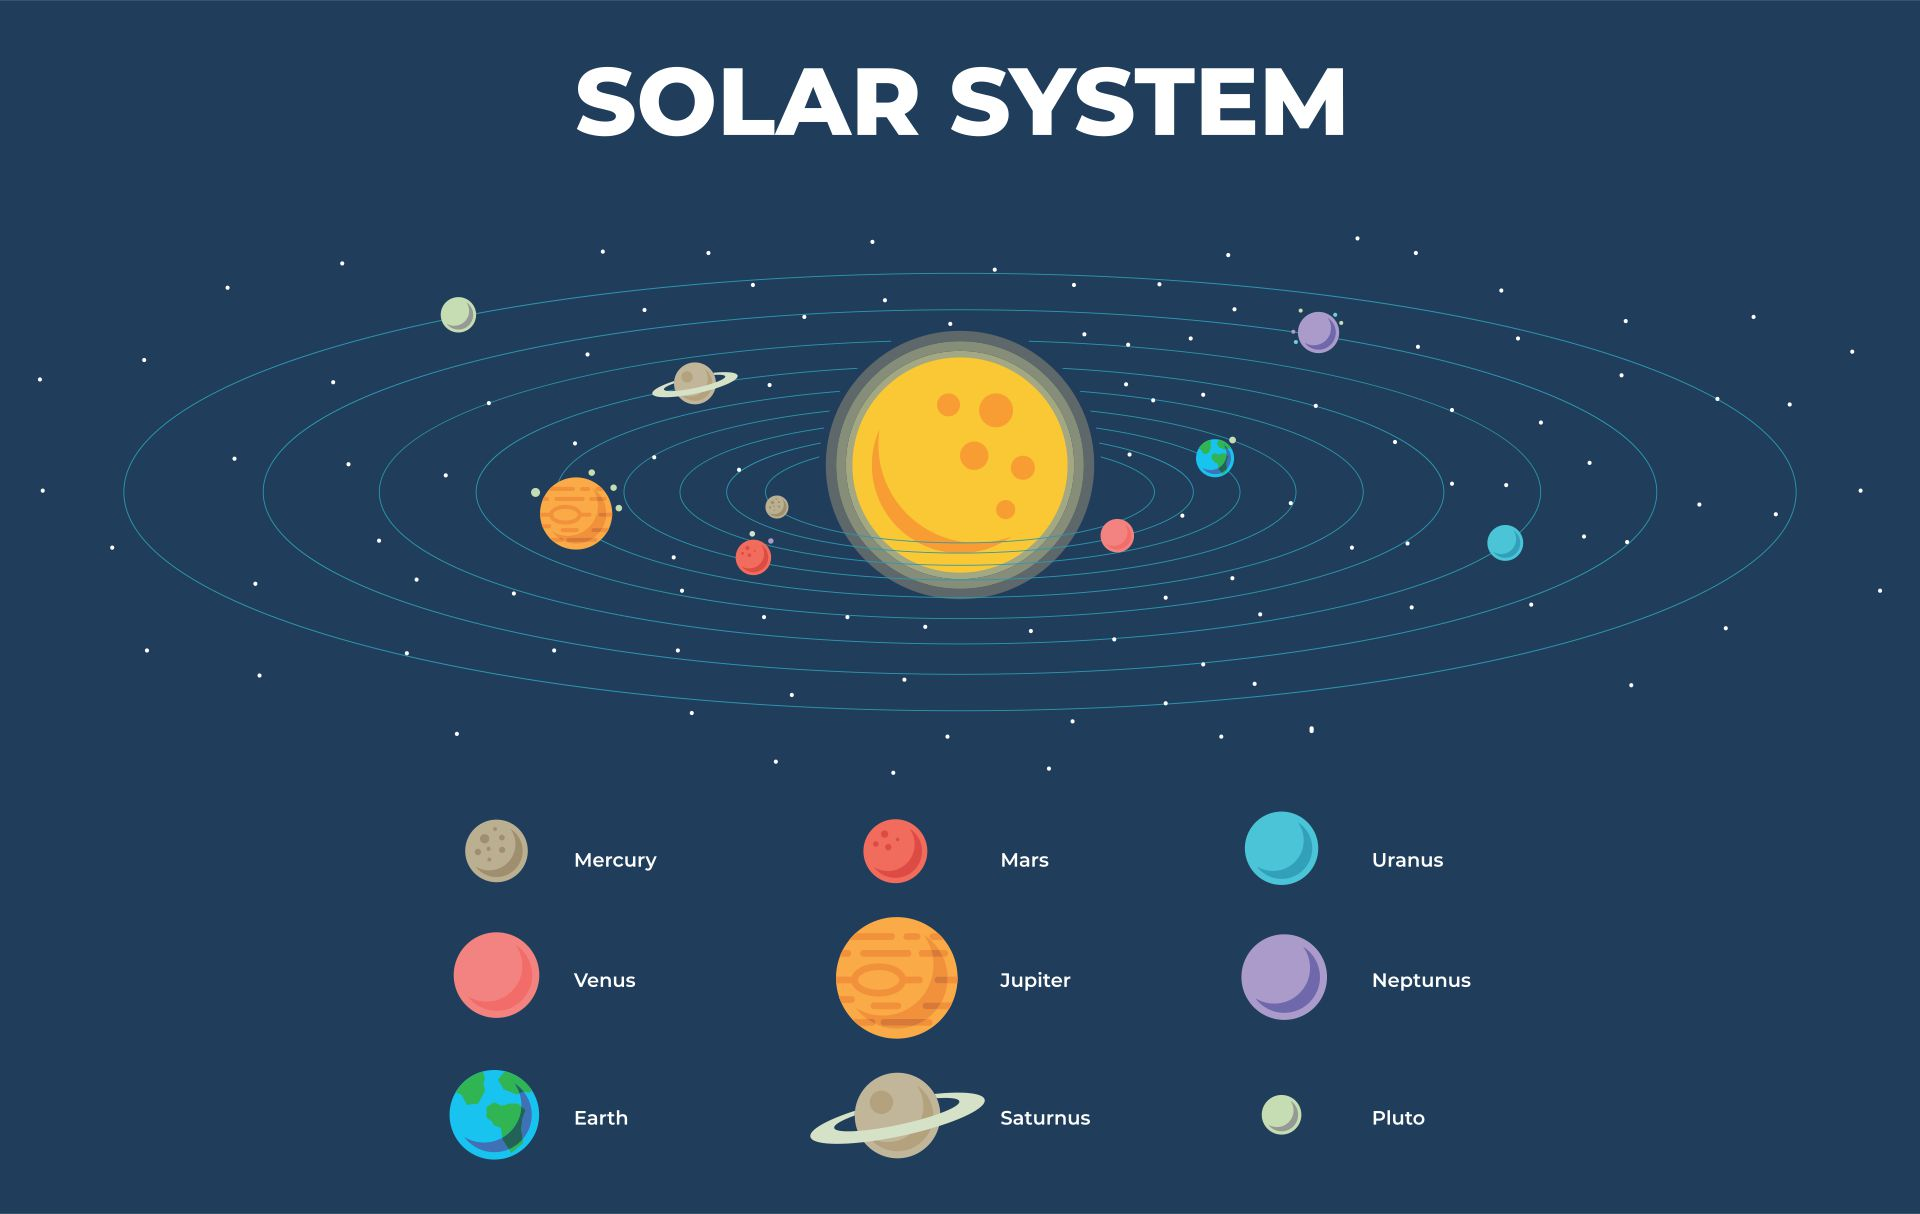 Free Printable Images Of The Solar System